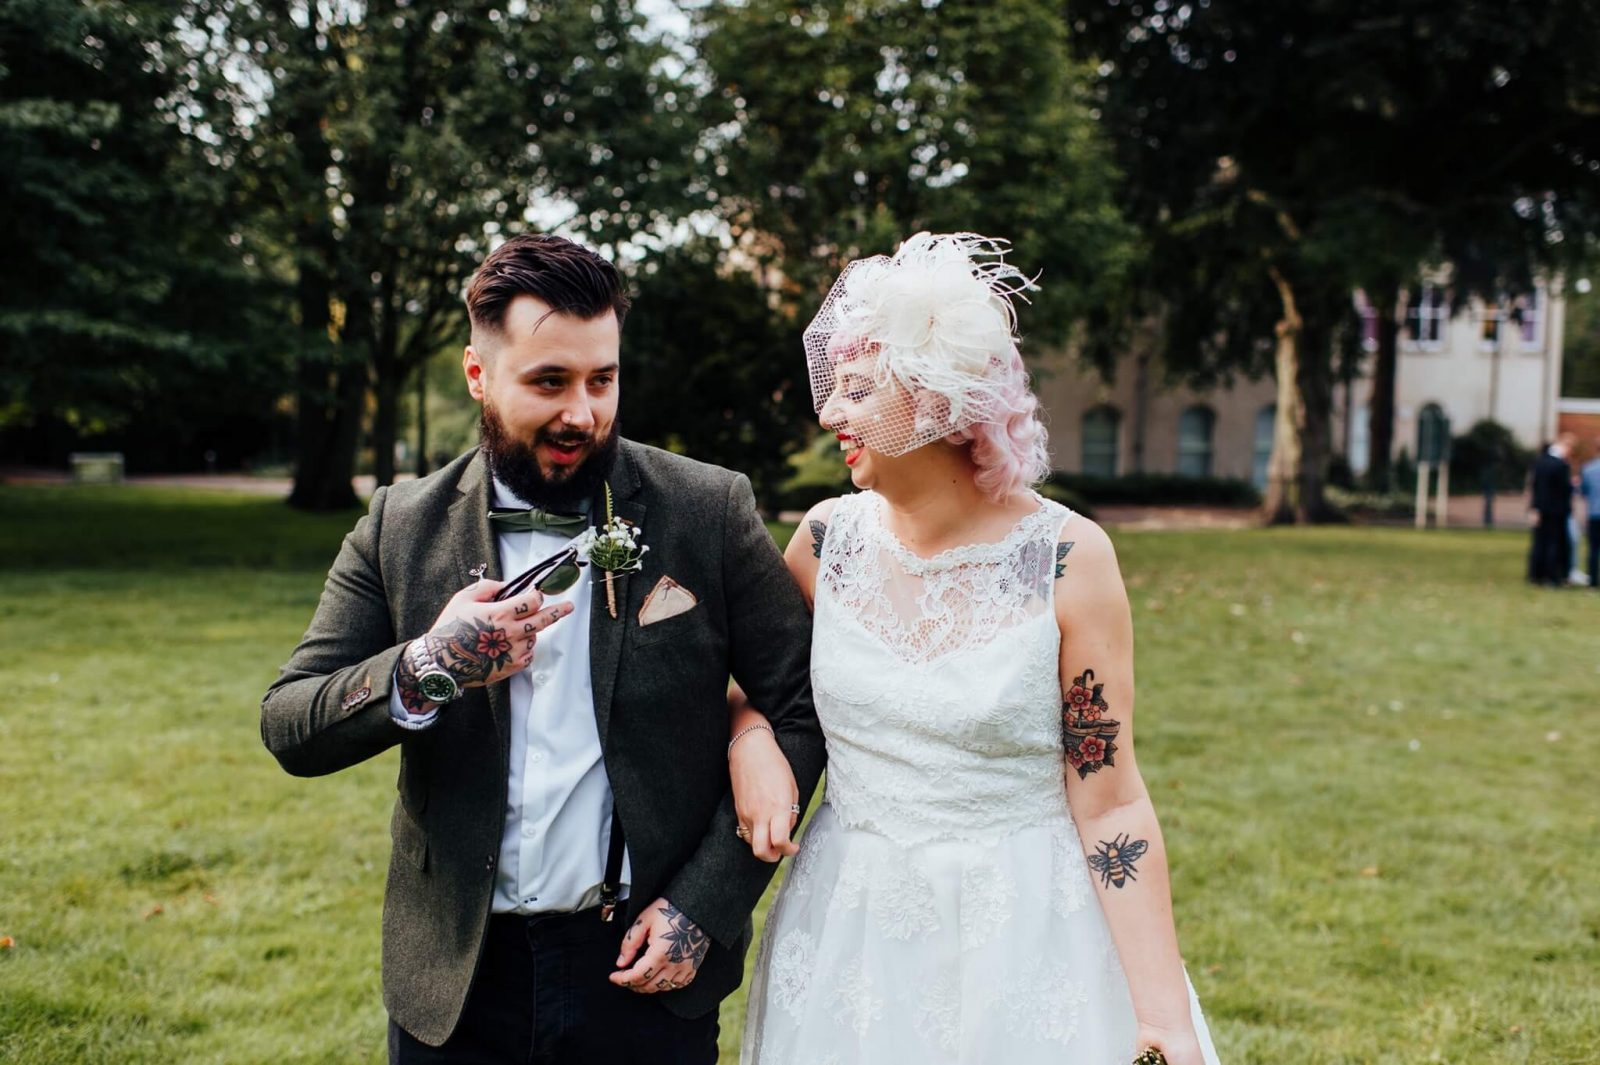 Registry office wedding with a beer garden reception